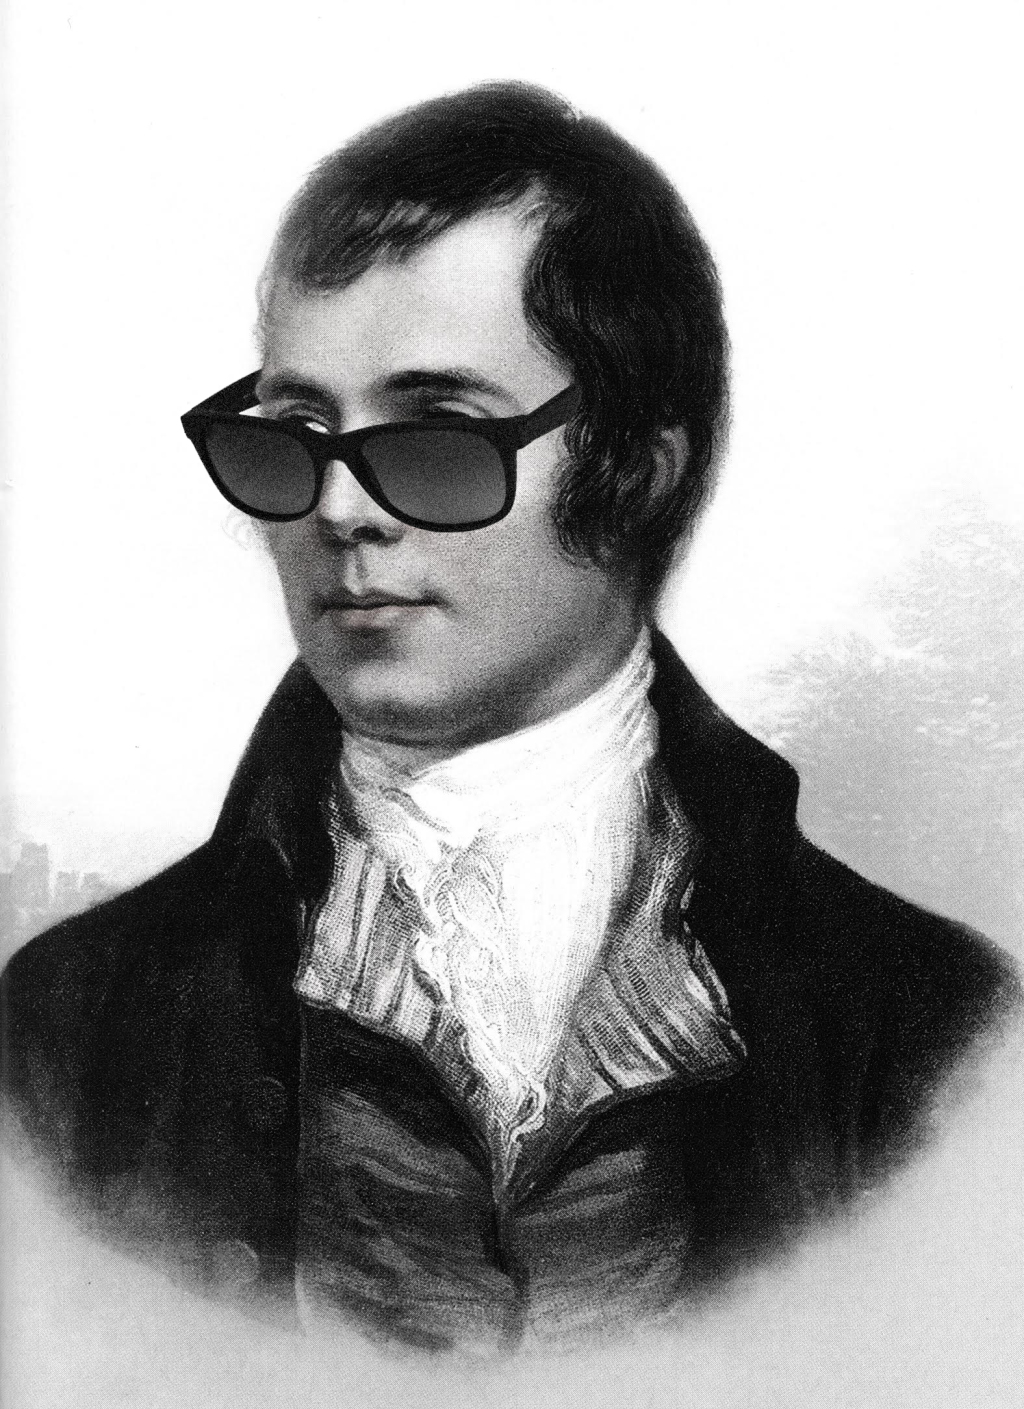 https://i0.wp.com/jackalopebrew.com/wp-content/uploads/2019/01/robbieburns.jpg?fit=1024%2C1409&ssl=1